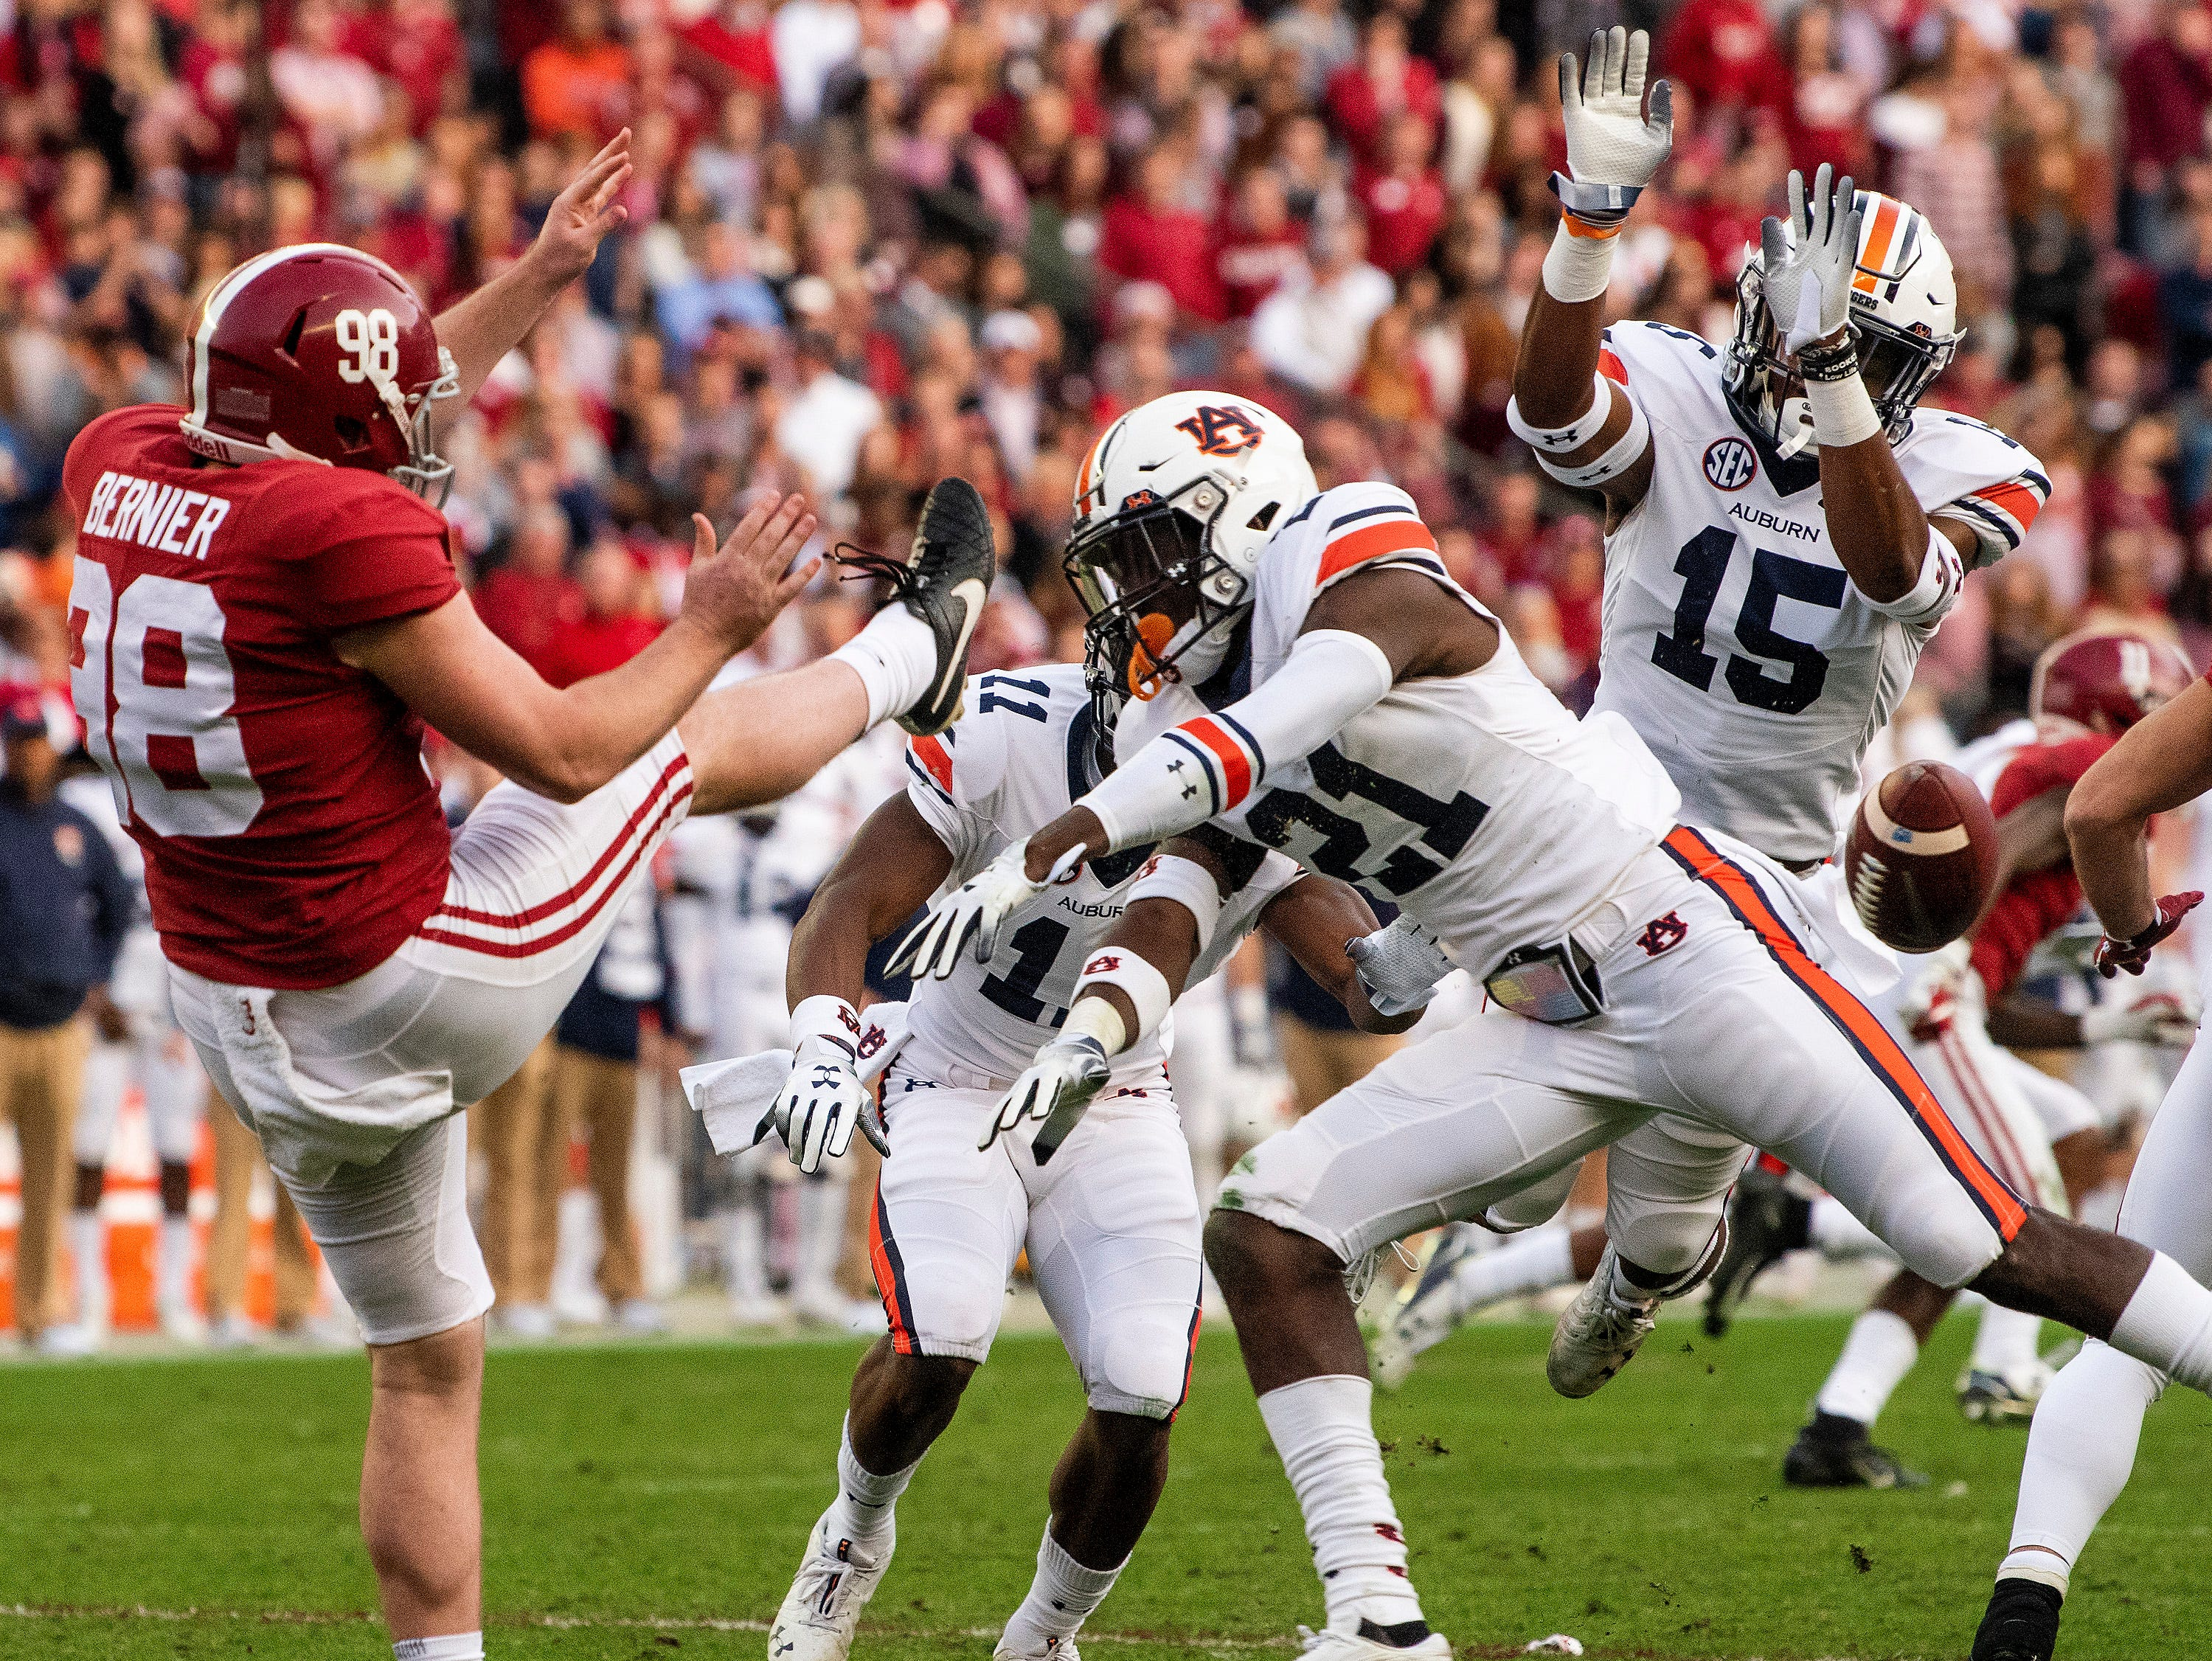 Auburn defensive back Smoke Monday (21) blocks a punt by Alabama punter Mike Bernier (98) in first half action during the Iron Bowl at Bryant-Denny Stadium in Tuscaloosa, Ala., on Saturday November 24, 2018.